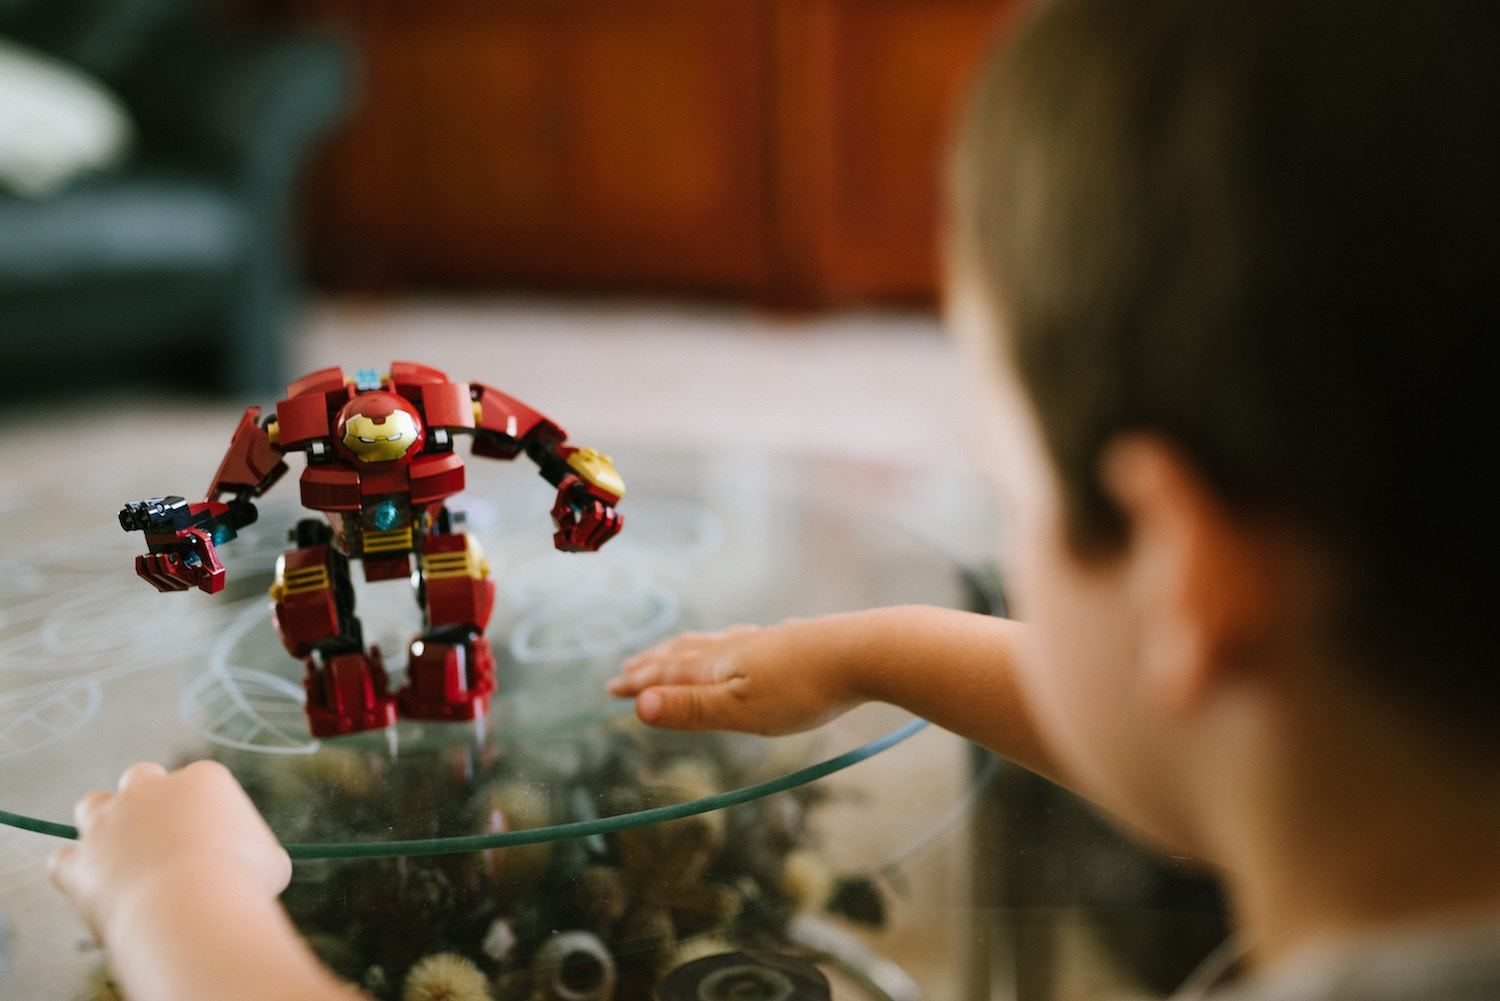 An Iron Man toy sits on a table